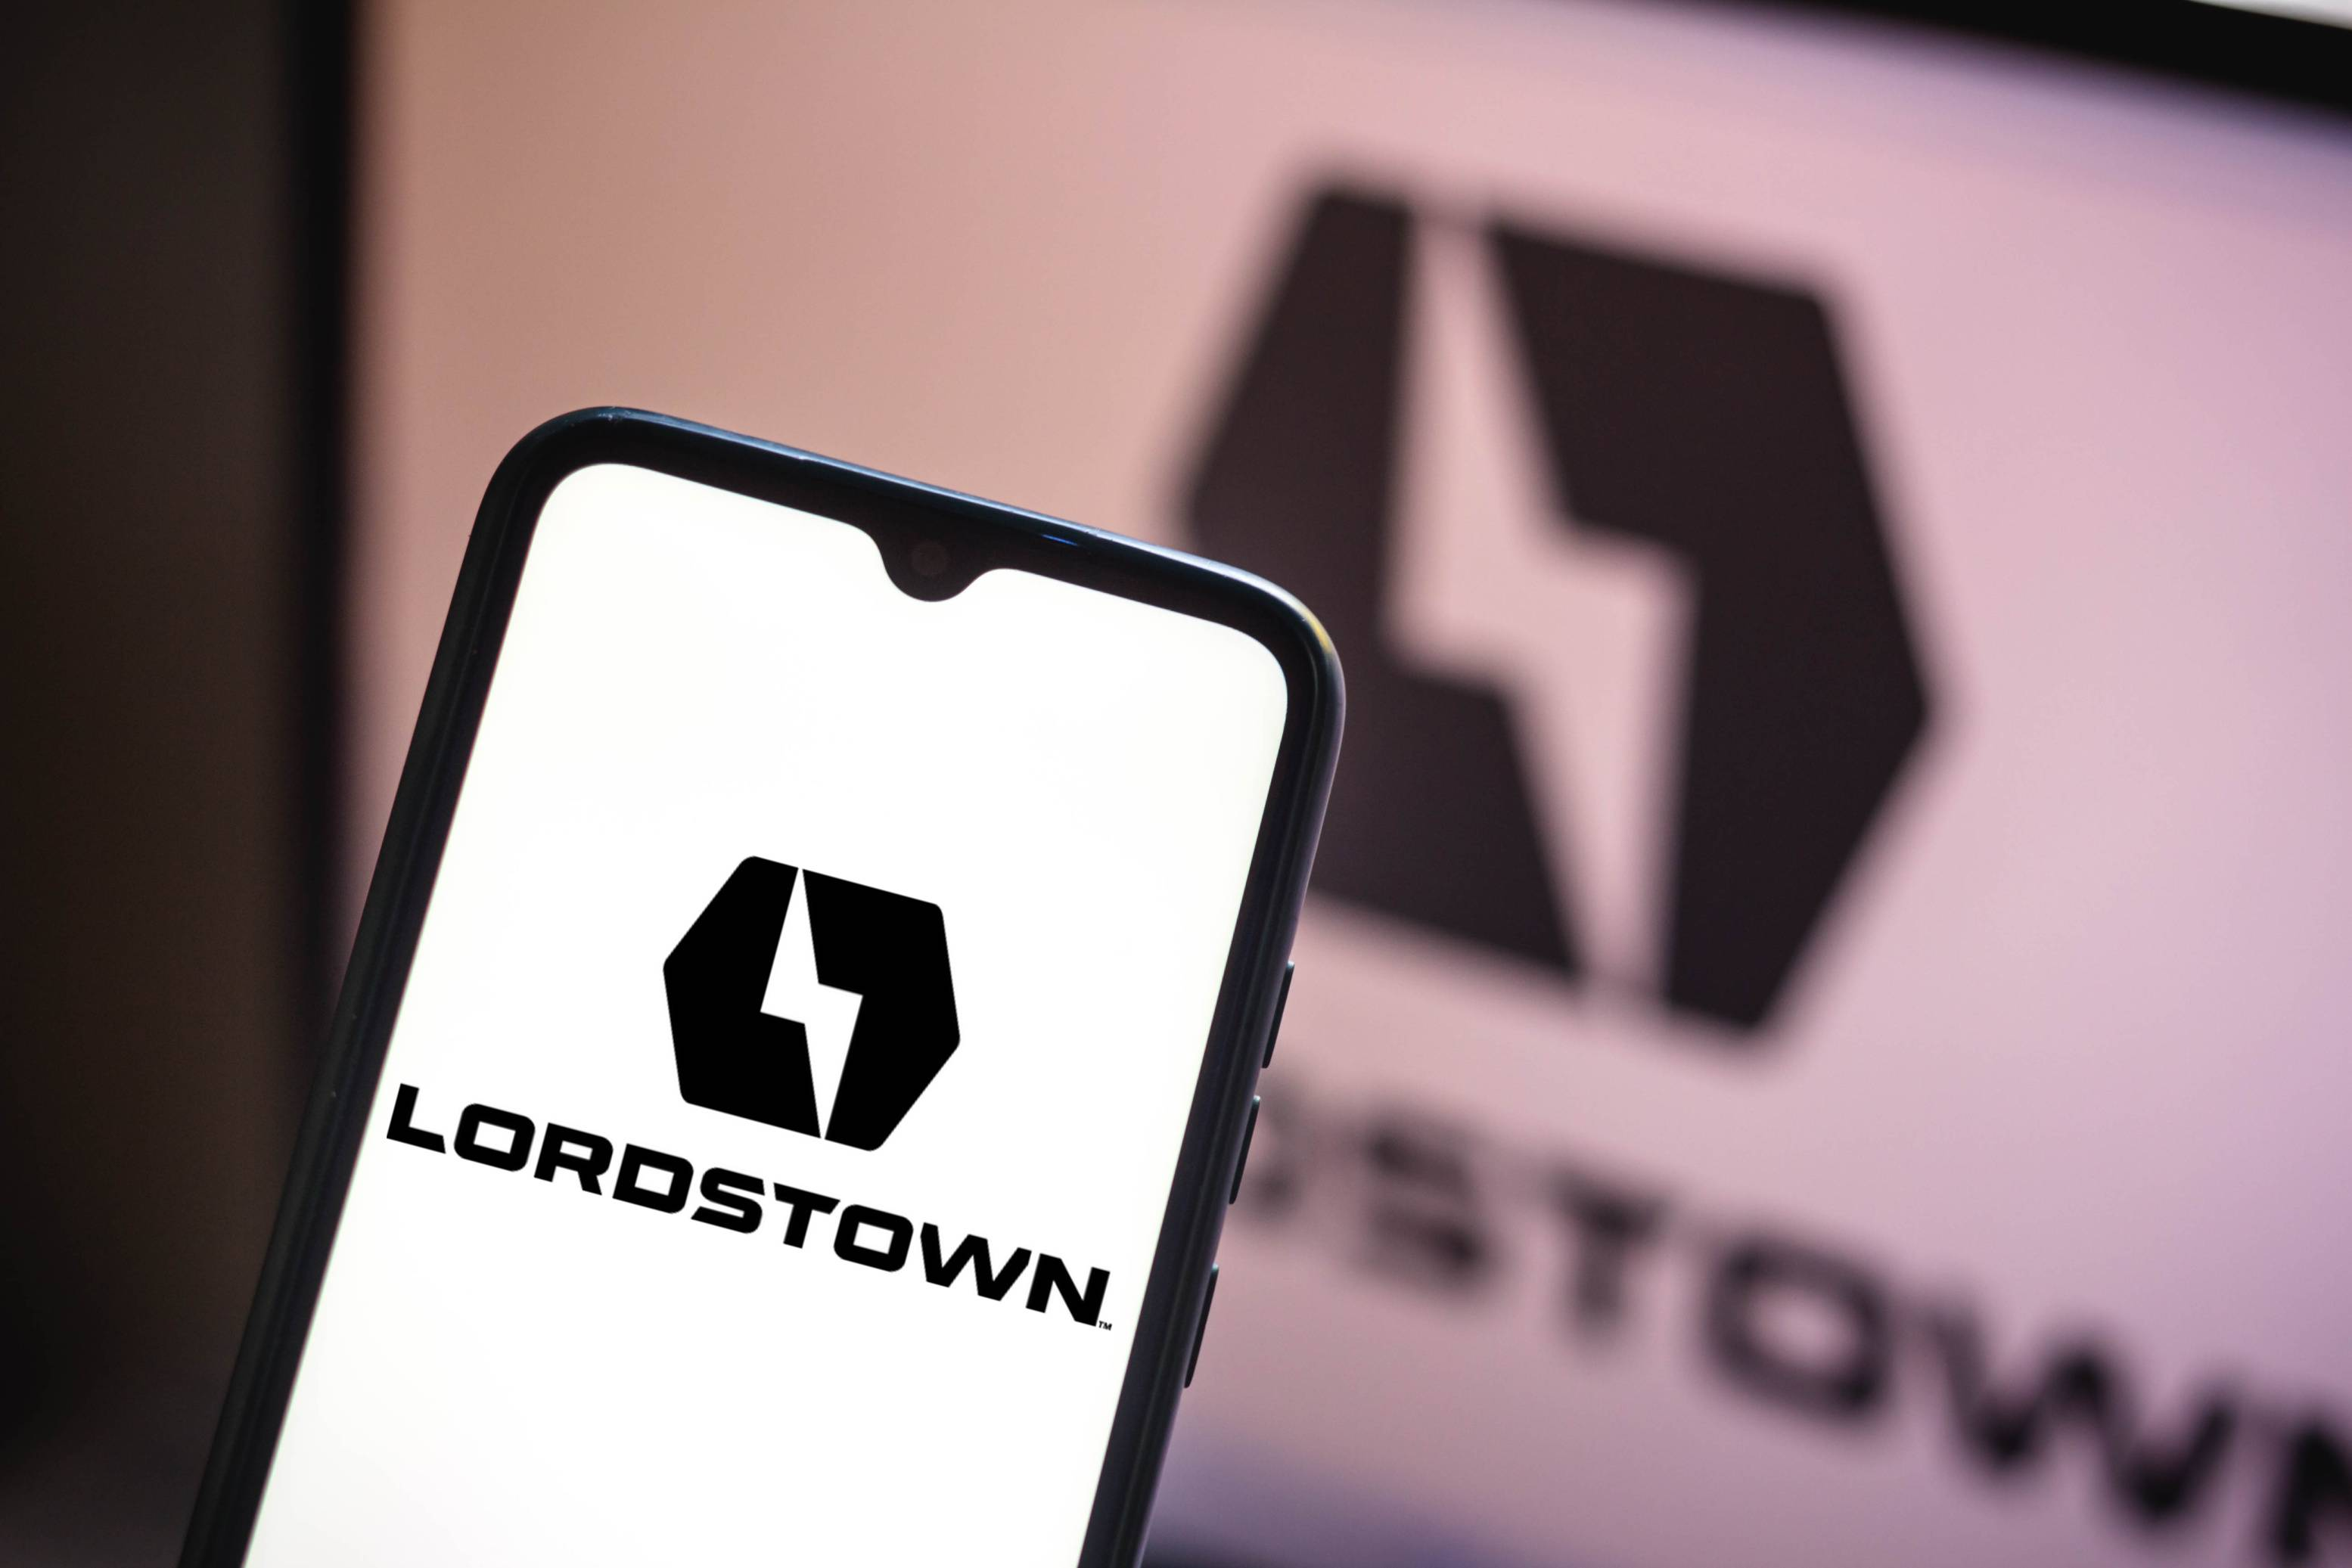 Lordstown Motors stock forecast (NASDAQ:RIDE) – here's what investors should know